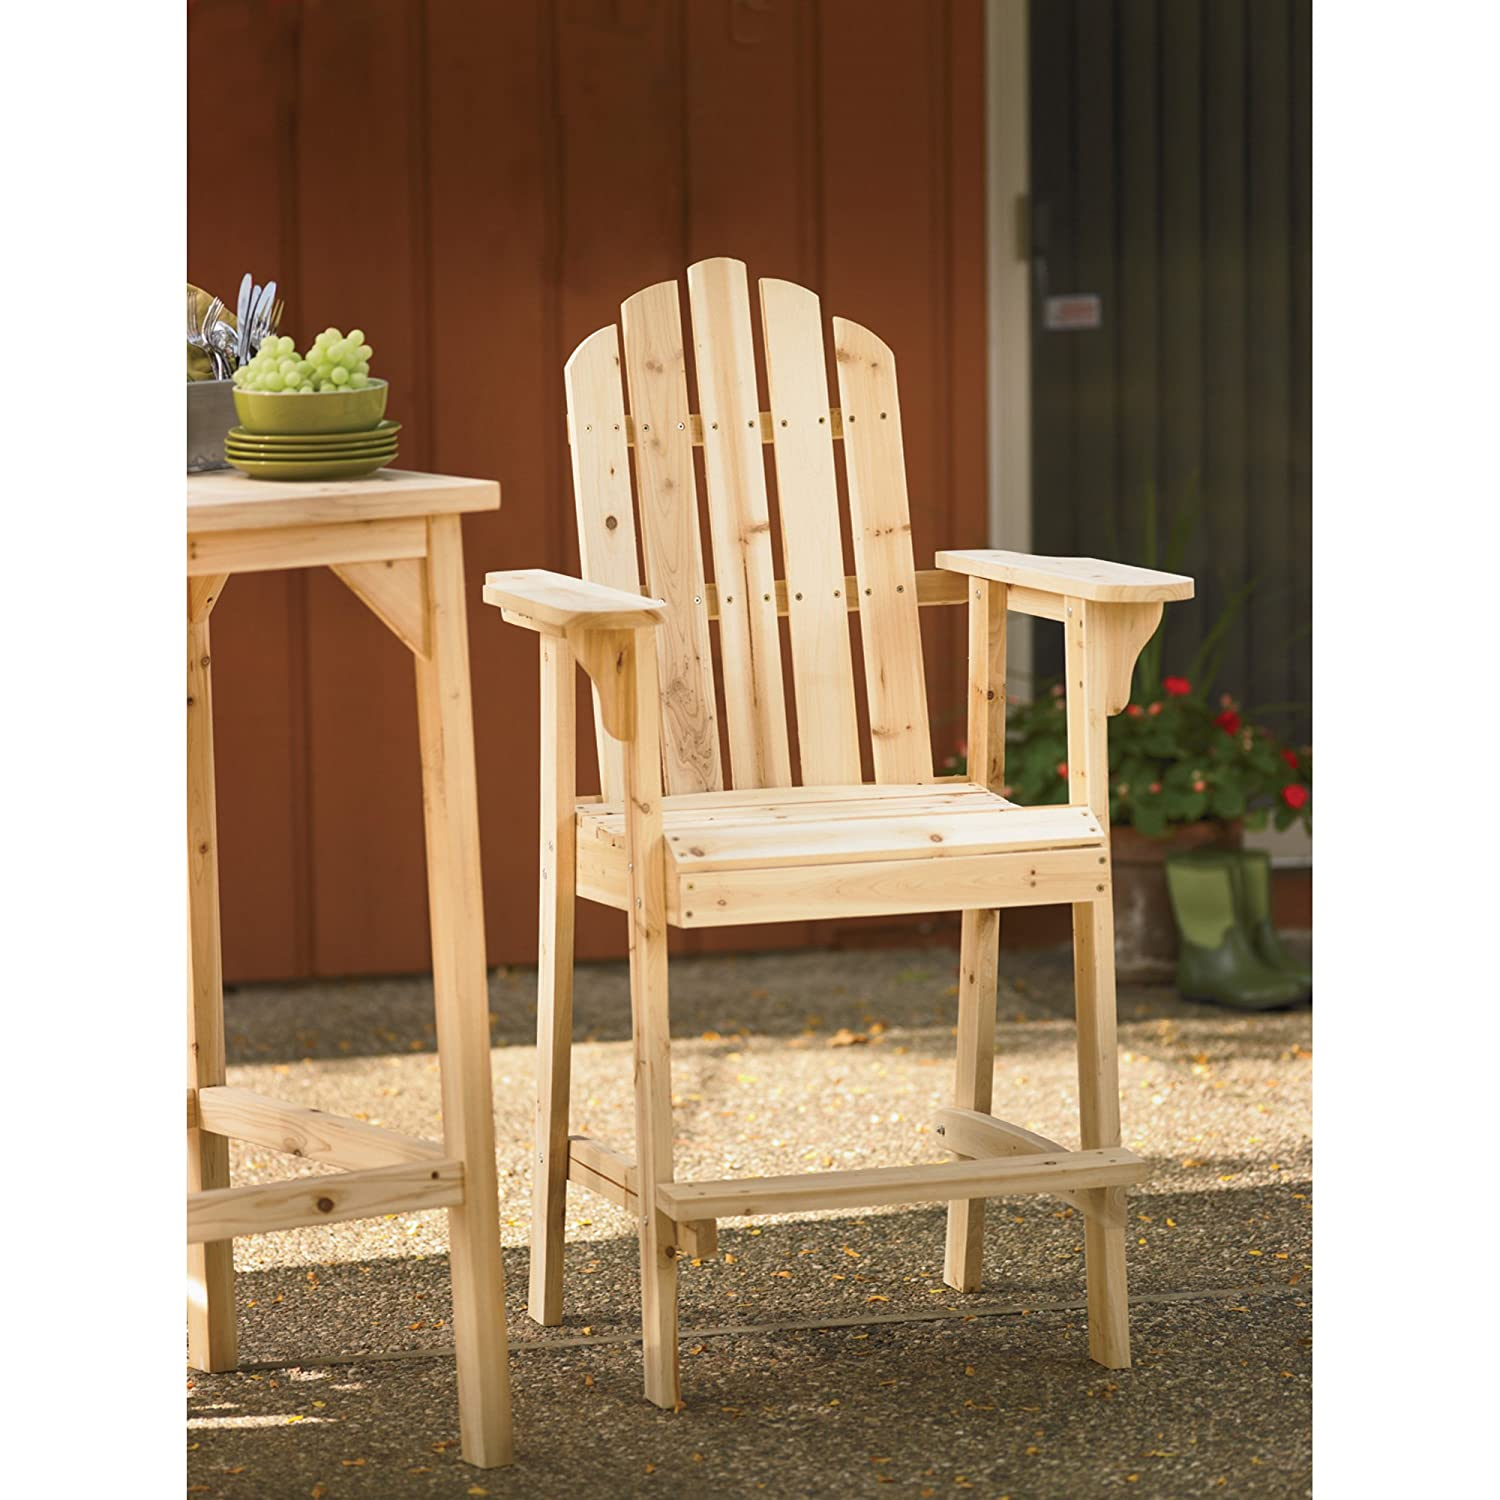 amazoncom tall unfinished fir wood adirondack chair bar height adirondack chairs garden u0026 outdoor